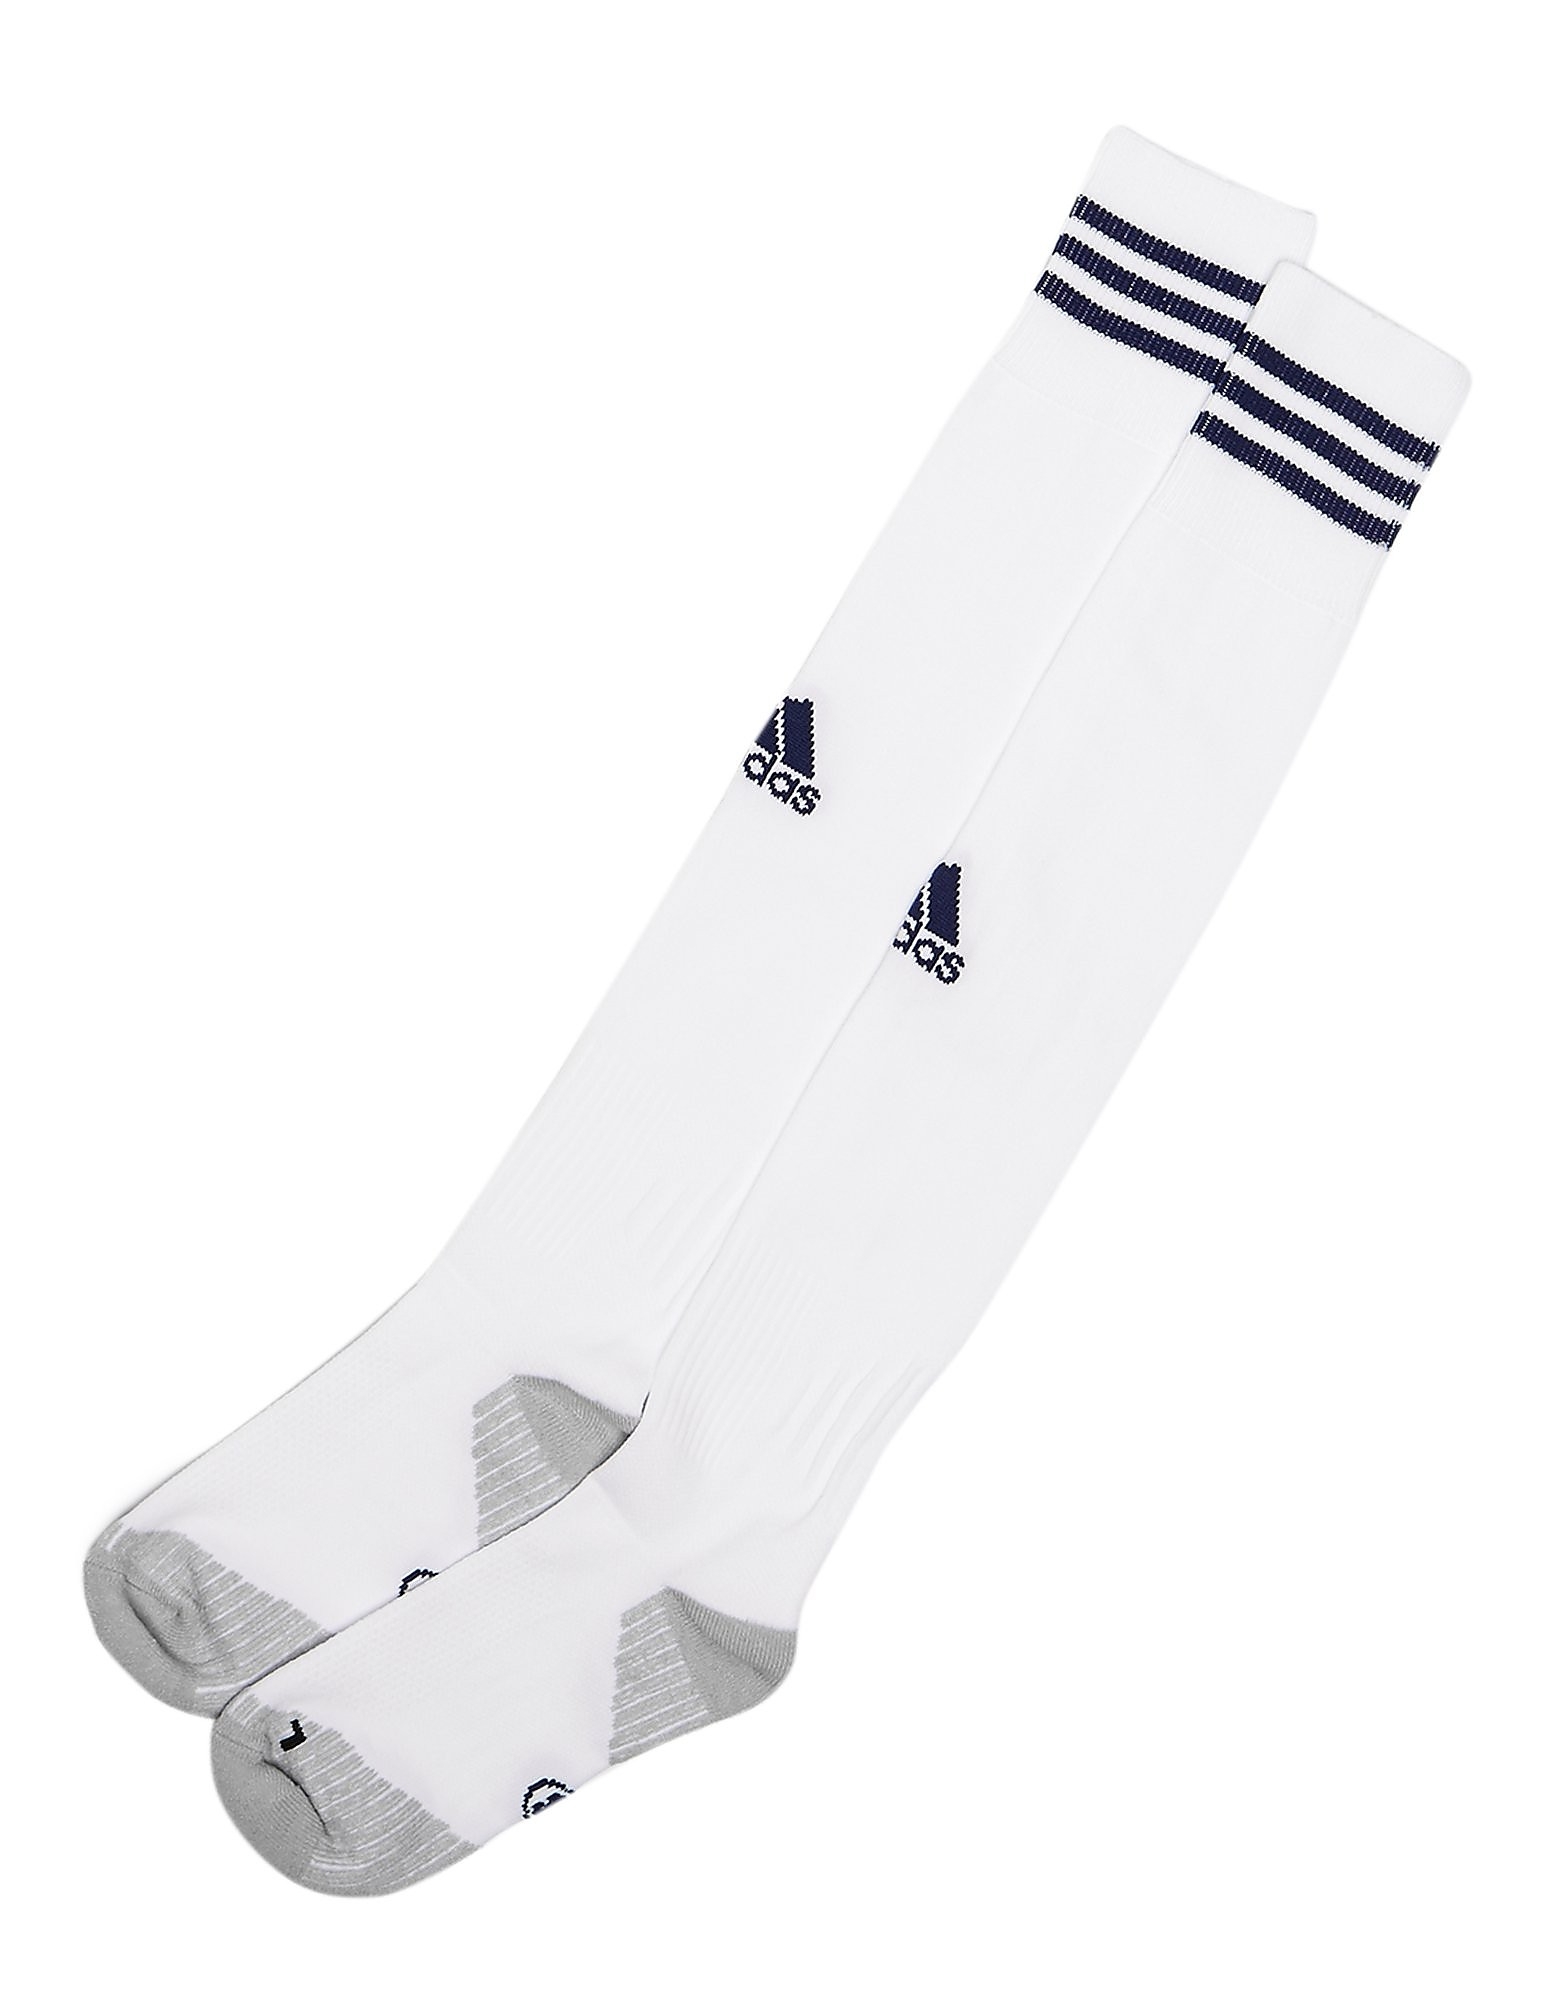 adidas West Brom Albion Home 17/18 Socks